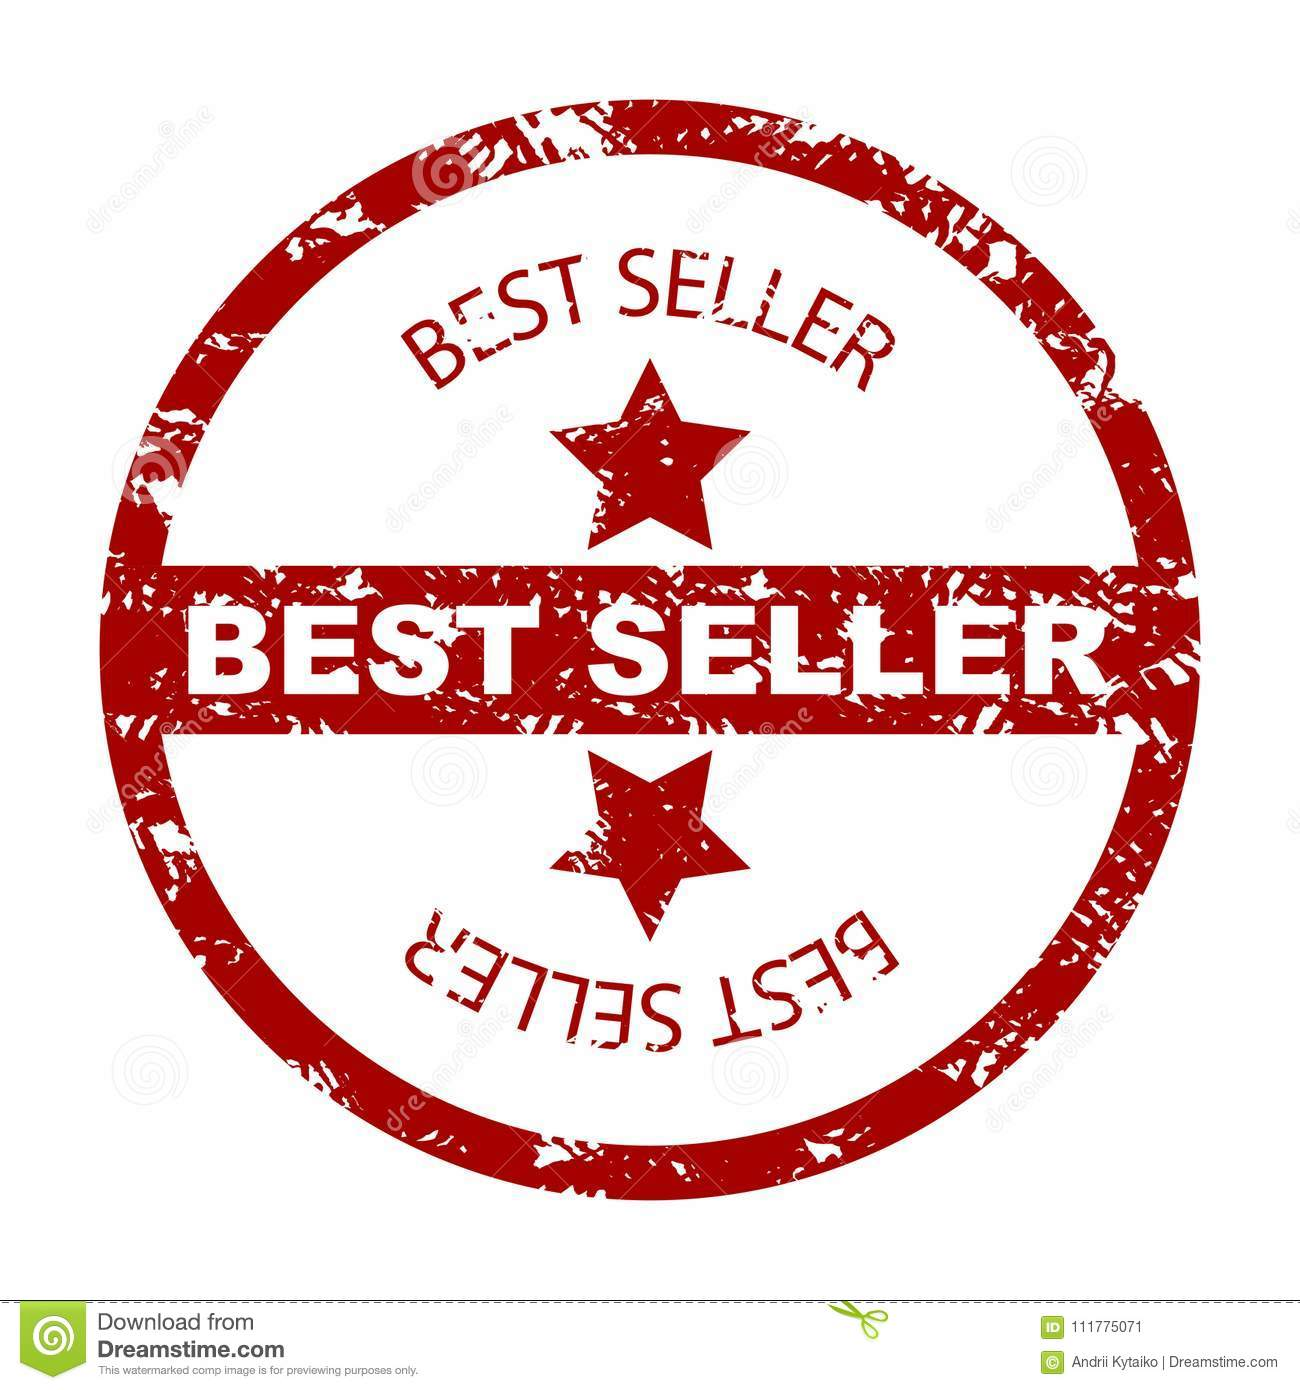 Best seller stamp seal with star